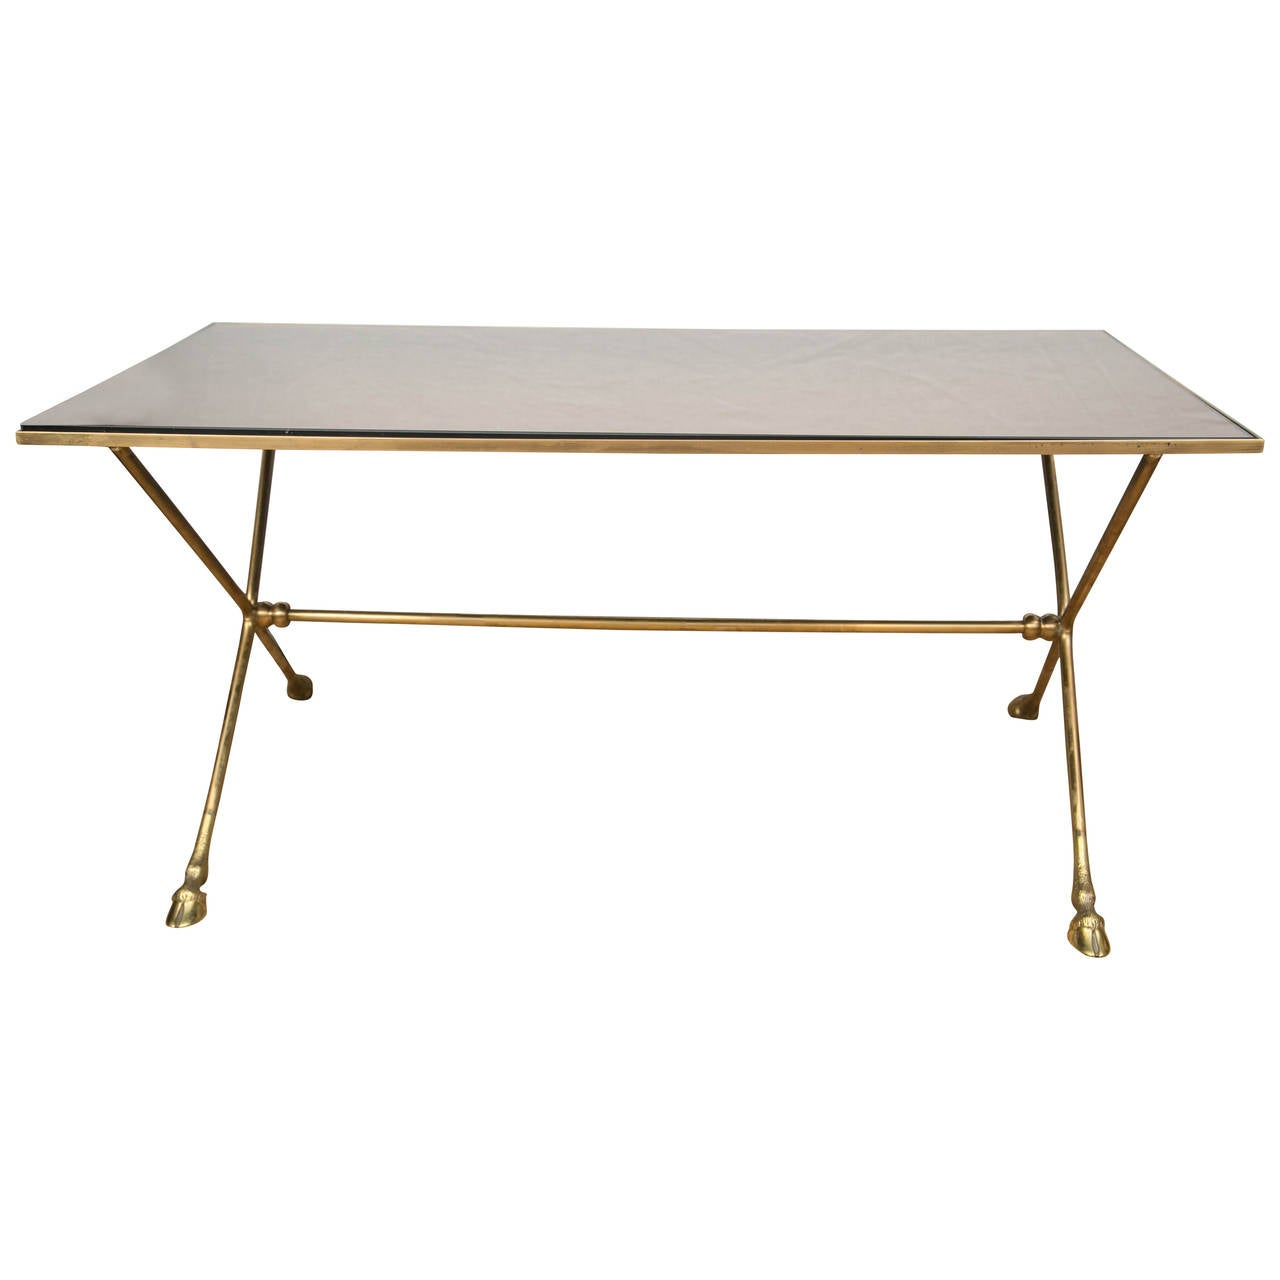 French 1950s Brass Cocktail Table in the Manner of Maison Jansen